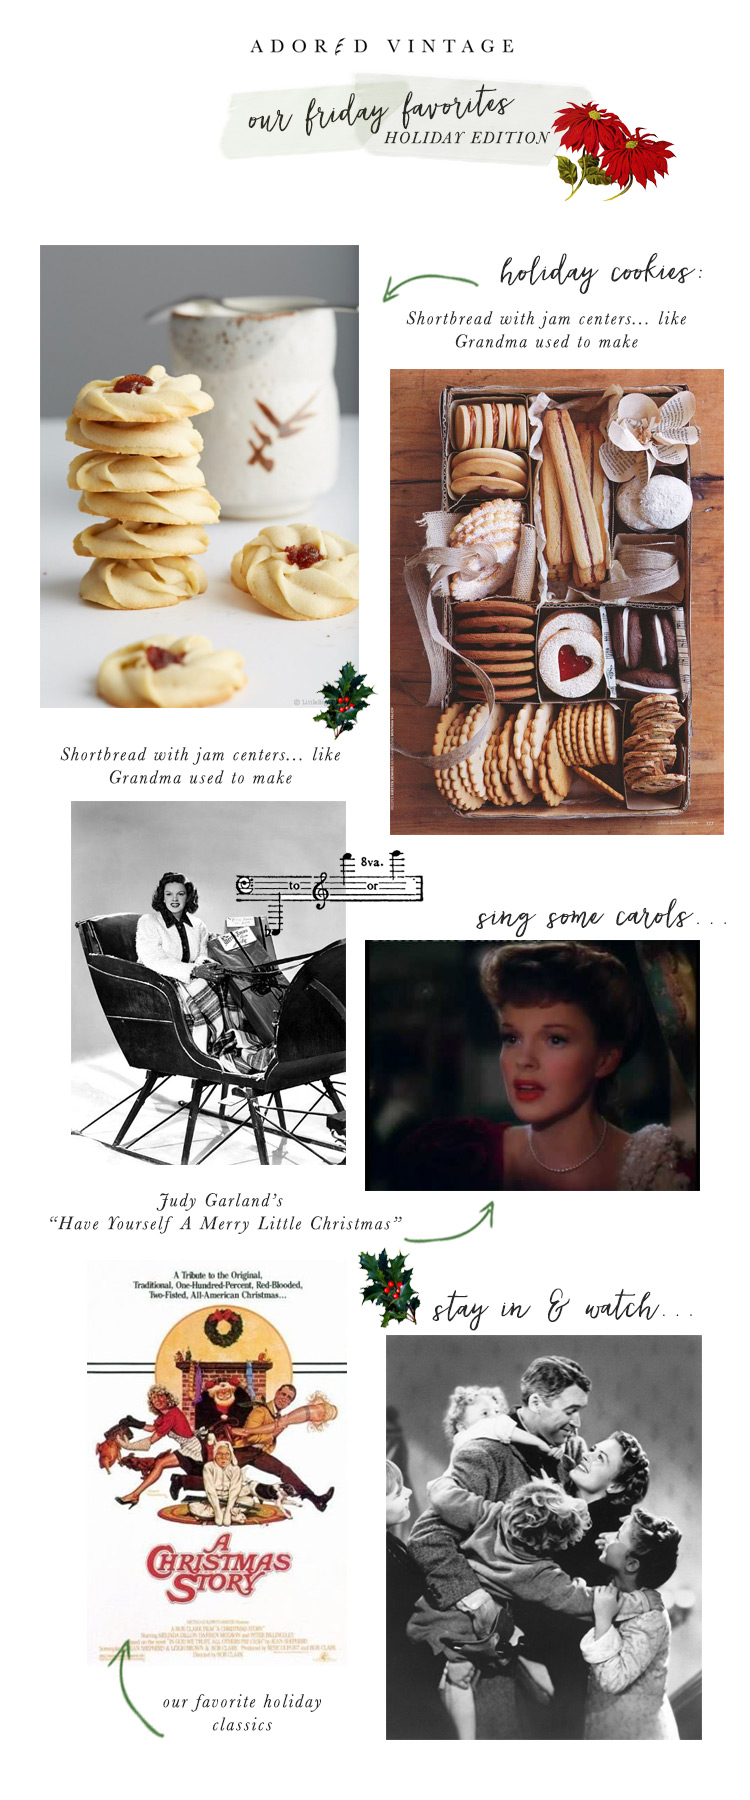 Adored Vintage Friday Favorites: Holiday Edition